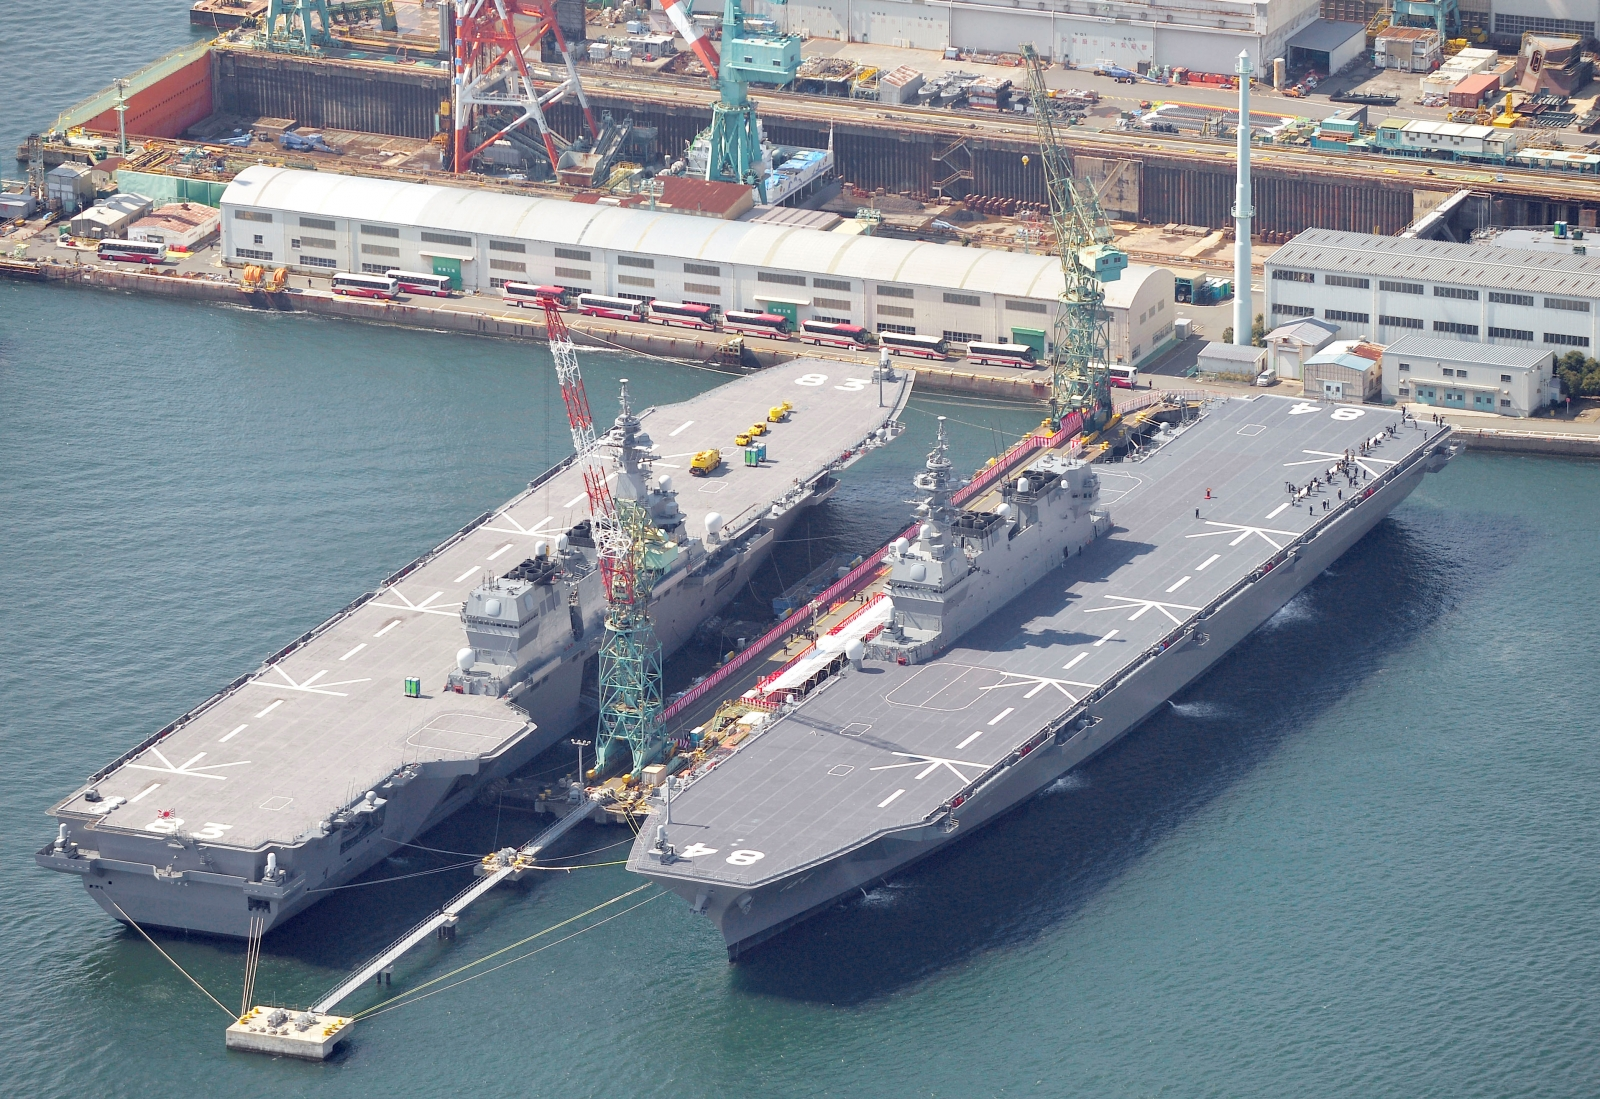 Japanese helicopter carrier